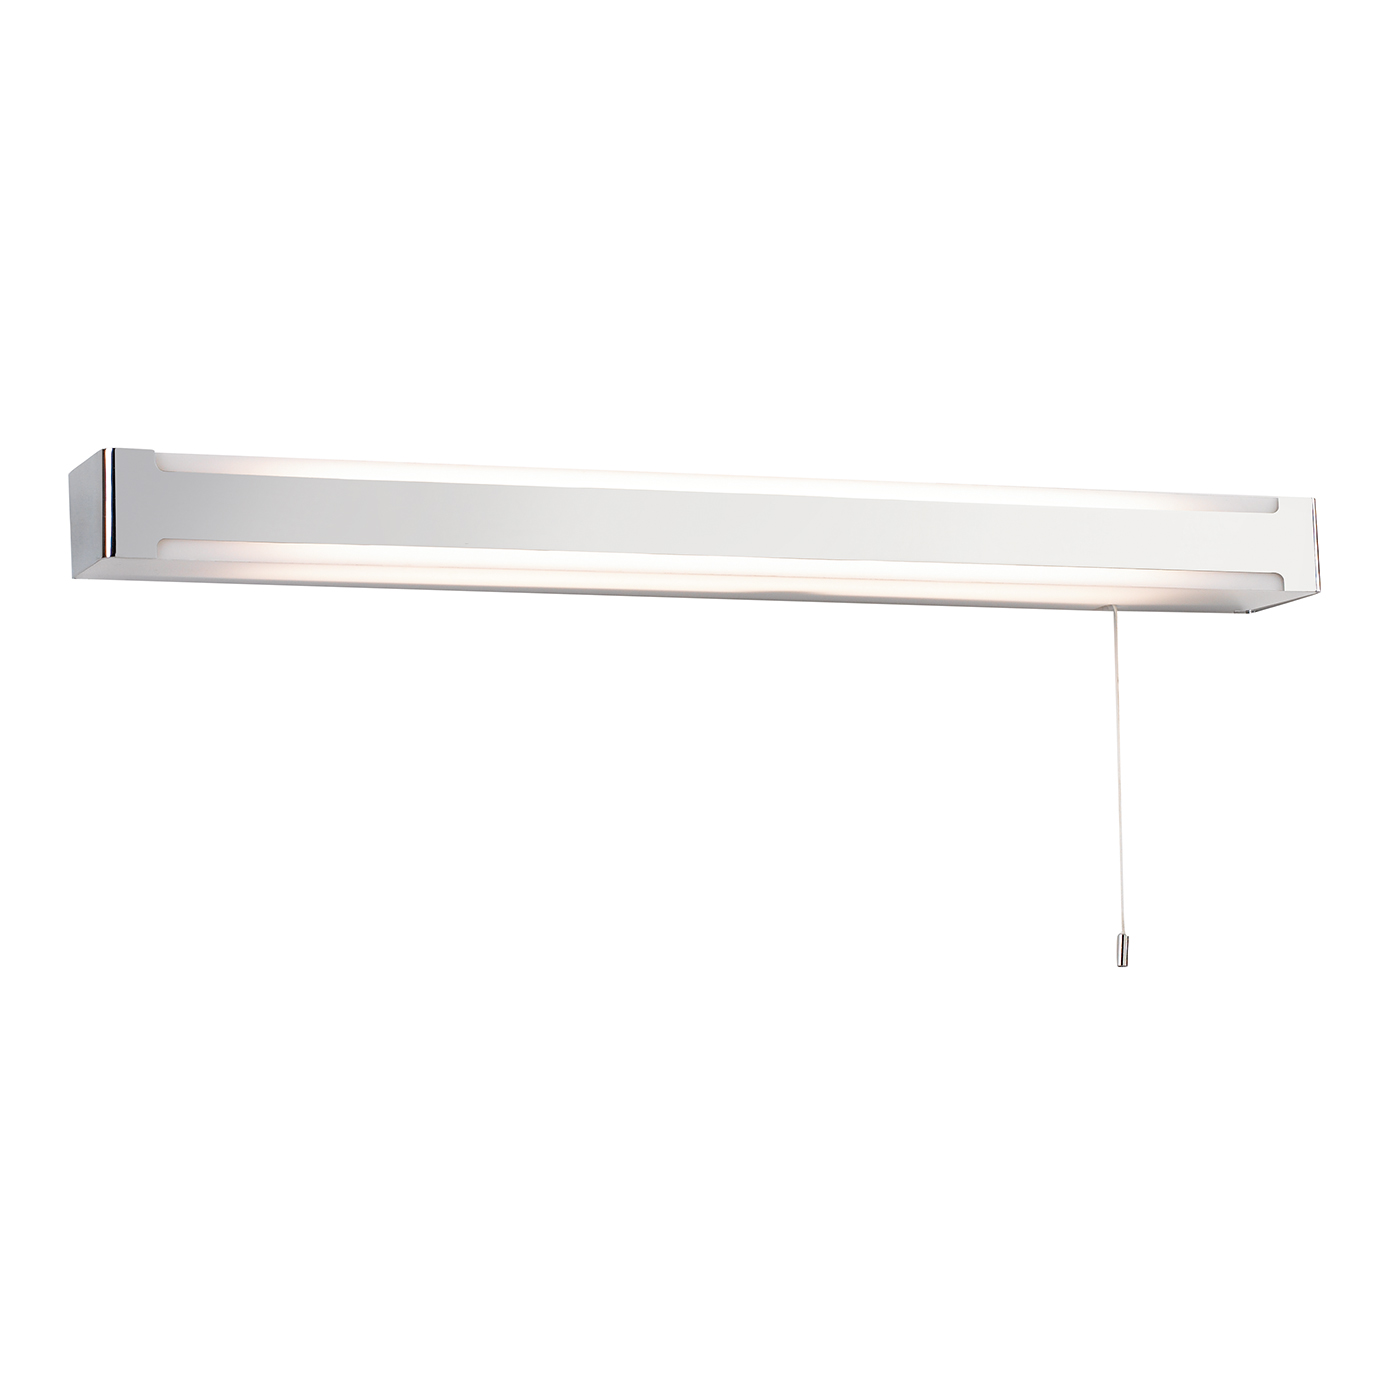 Endon Seval 1lt bathroom wall light HF IP44 14W Chrome & white acrylic pull cord